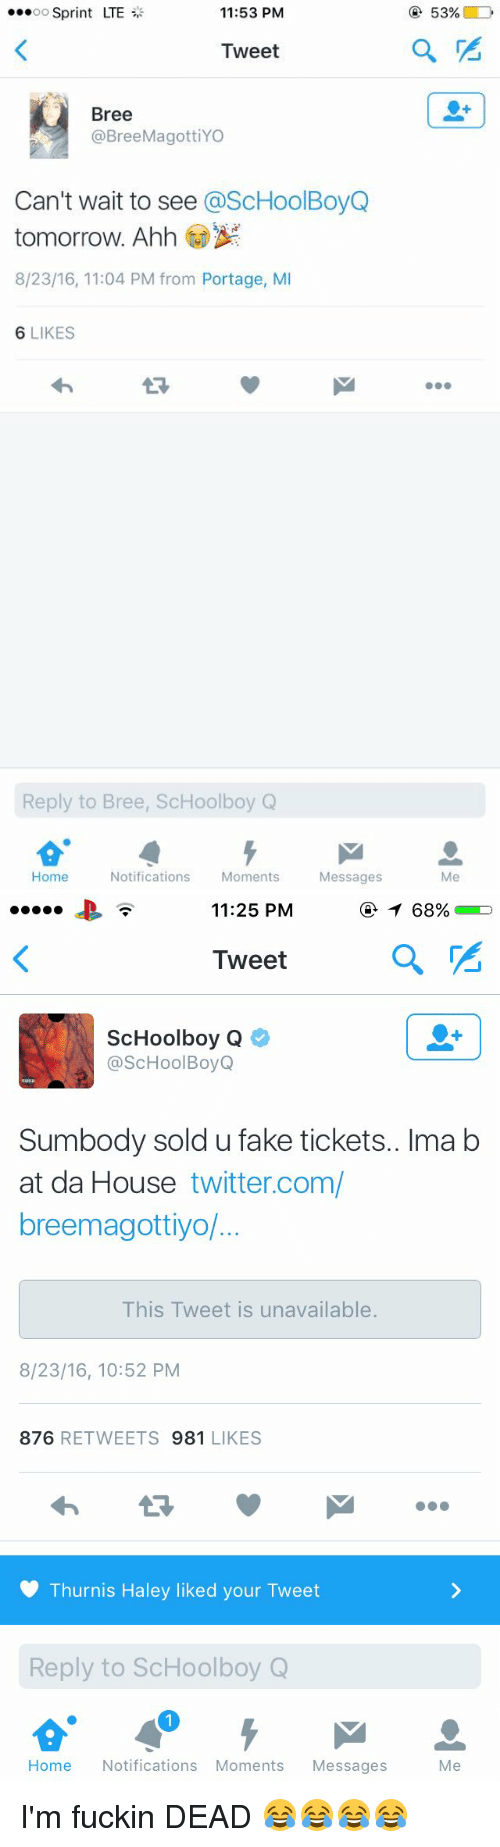 ScHoolboy Q: OO  Sprint LTE  11:53 PM  Tweet  Bree  @Bree MagottiYO  Can't wait to see  @ScHoolBoyQ  tomorrow. Ahh  8/23/16, 11:04 PM from Portage, MI  6 LIKES  Reply to Bree, ScHoolboy Q  Home Notifications  Moments  Messages  53%   11:25 PM  Tweet  ScHoolboy Q  @ScHool Boy Q  Sumbody sold u fake tickets.. Ima b  at da House twitter.com/  breemagottiyo/  This Tweet is unavailable.  8/23/16, 10:52 PM  876  RETWEETS  981  LIKES  Thurnis Haley liked your Tweet  Reply to ScHoolboy Q  Home  Notifications Moments  Messages  Me I'm fuckin DEAD 😂😂😂😂